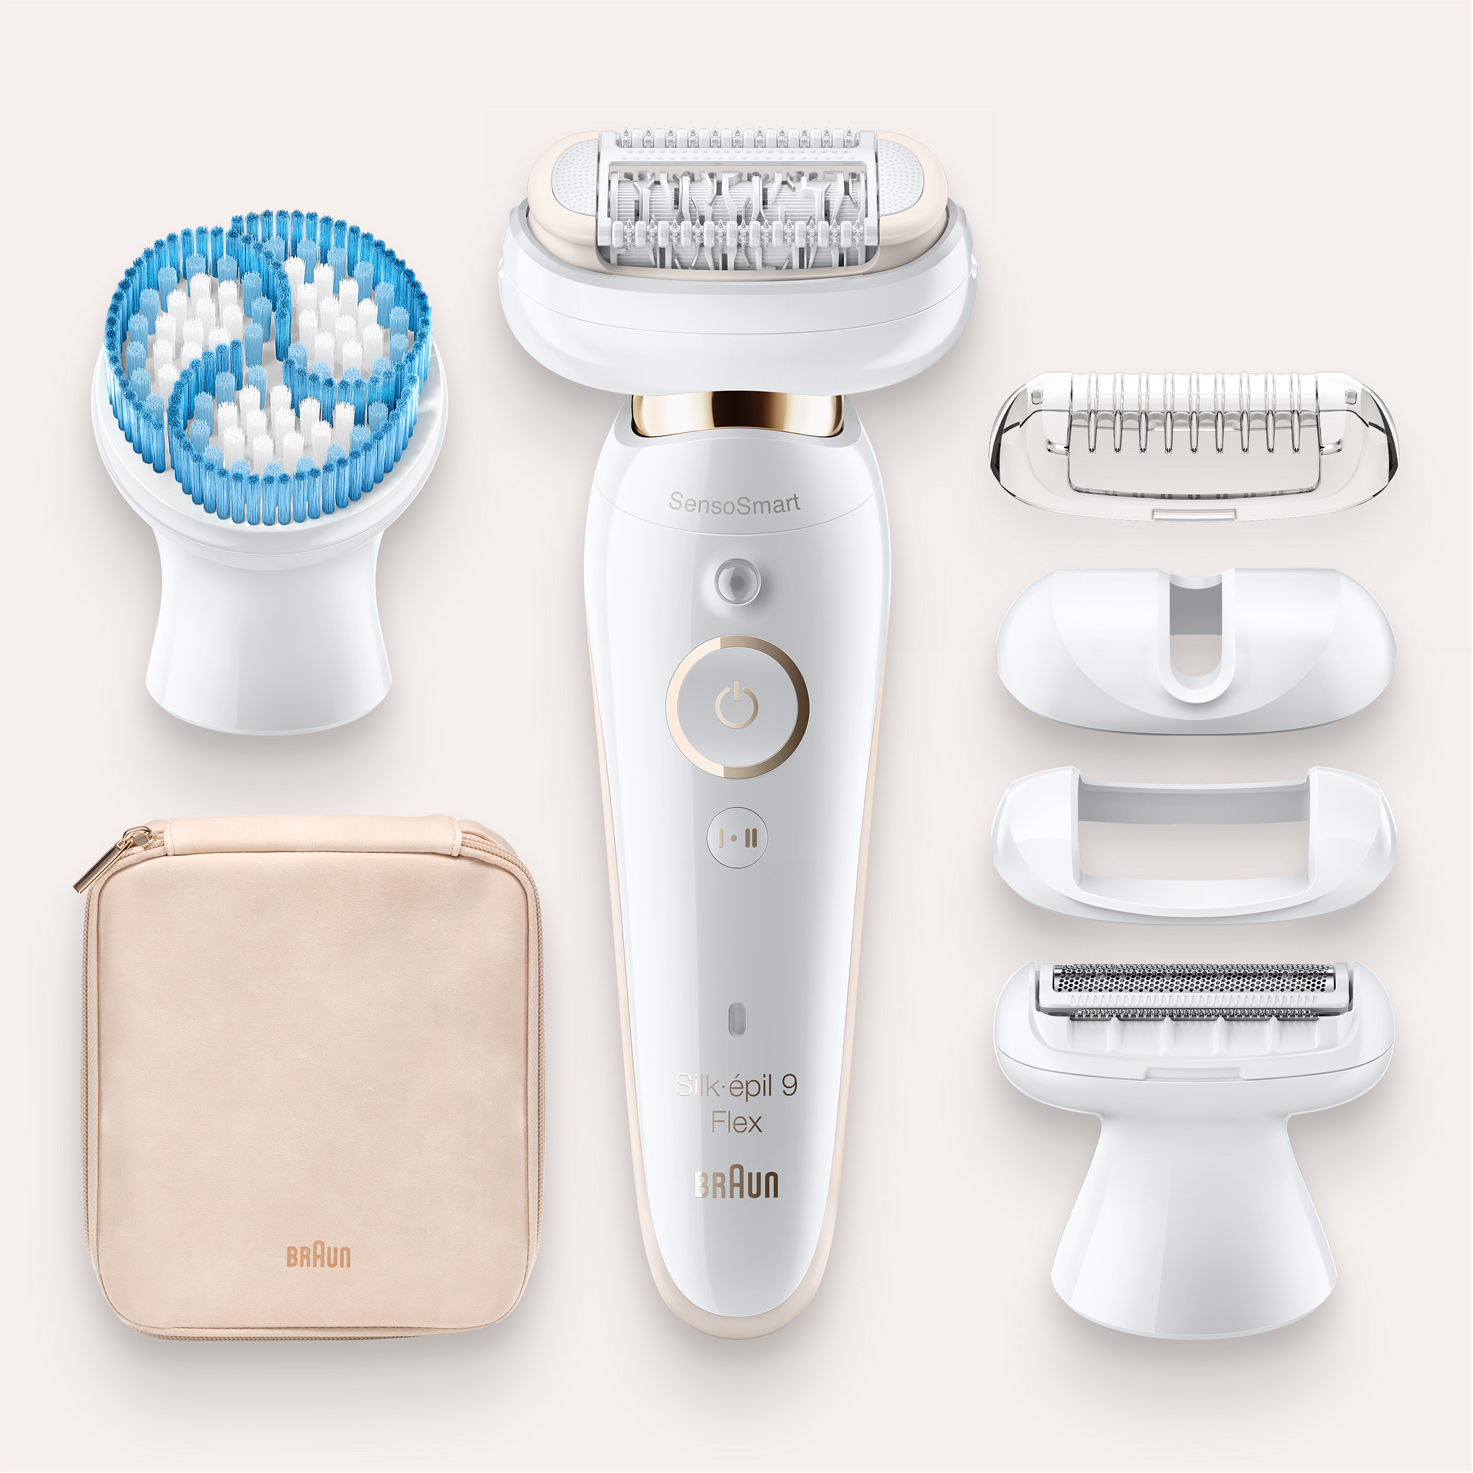 Silk-épil 9 Flex 9-010 epilator